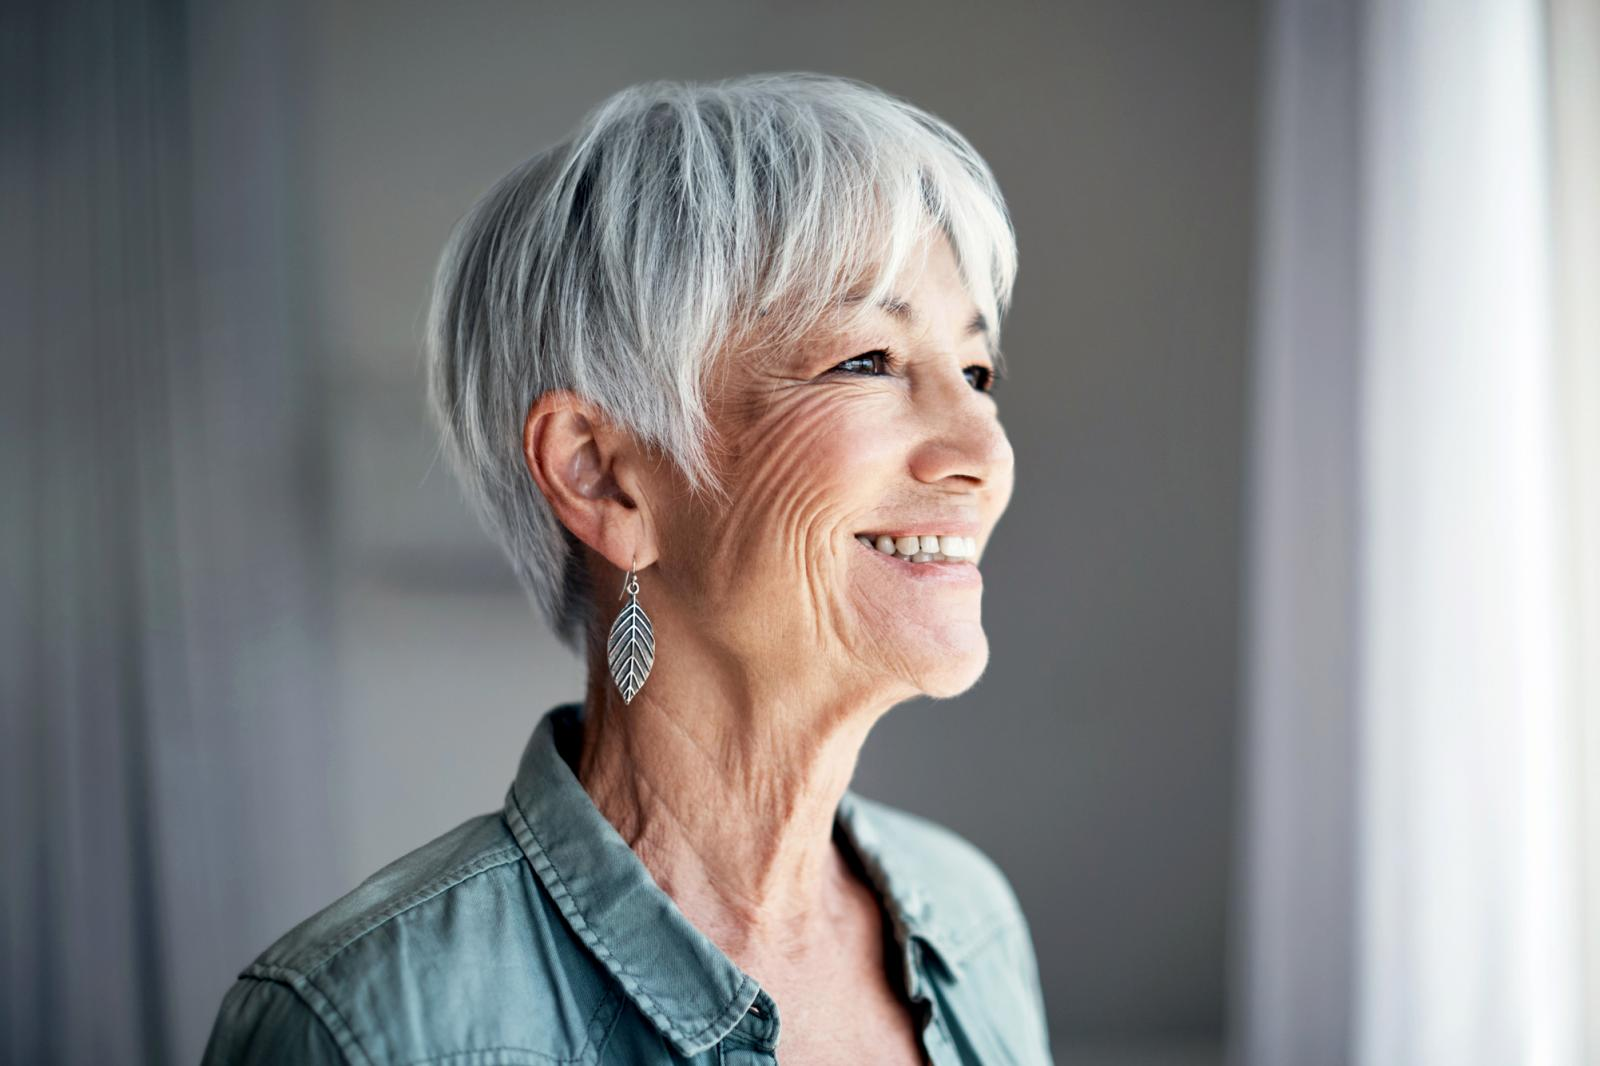 Choosing Hairstyles for Older Women | LoveToKnow